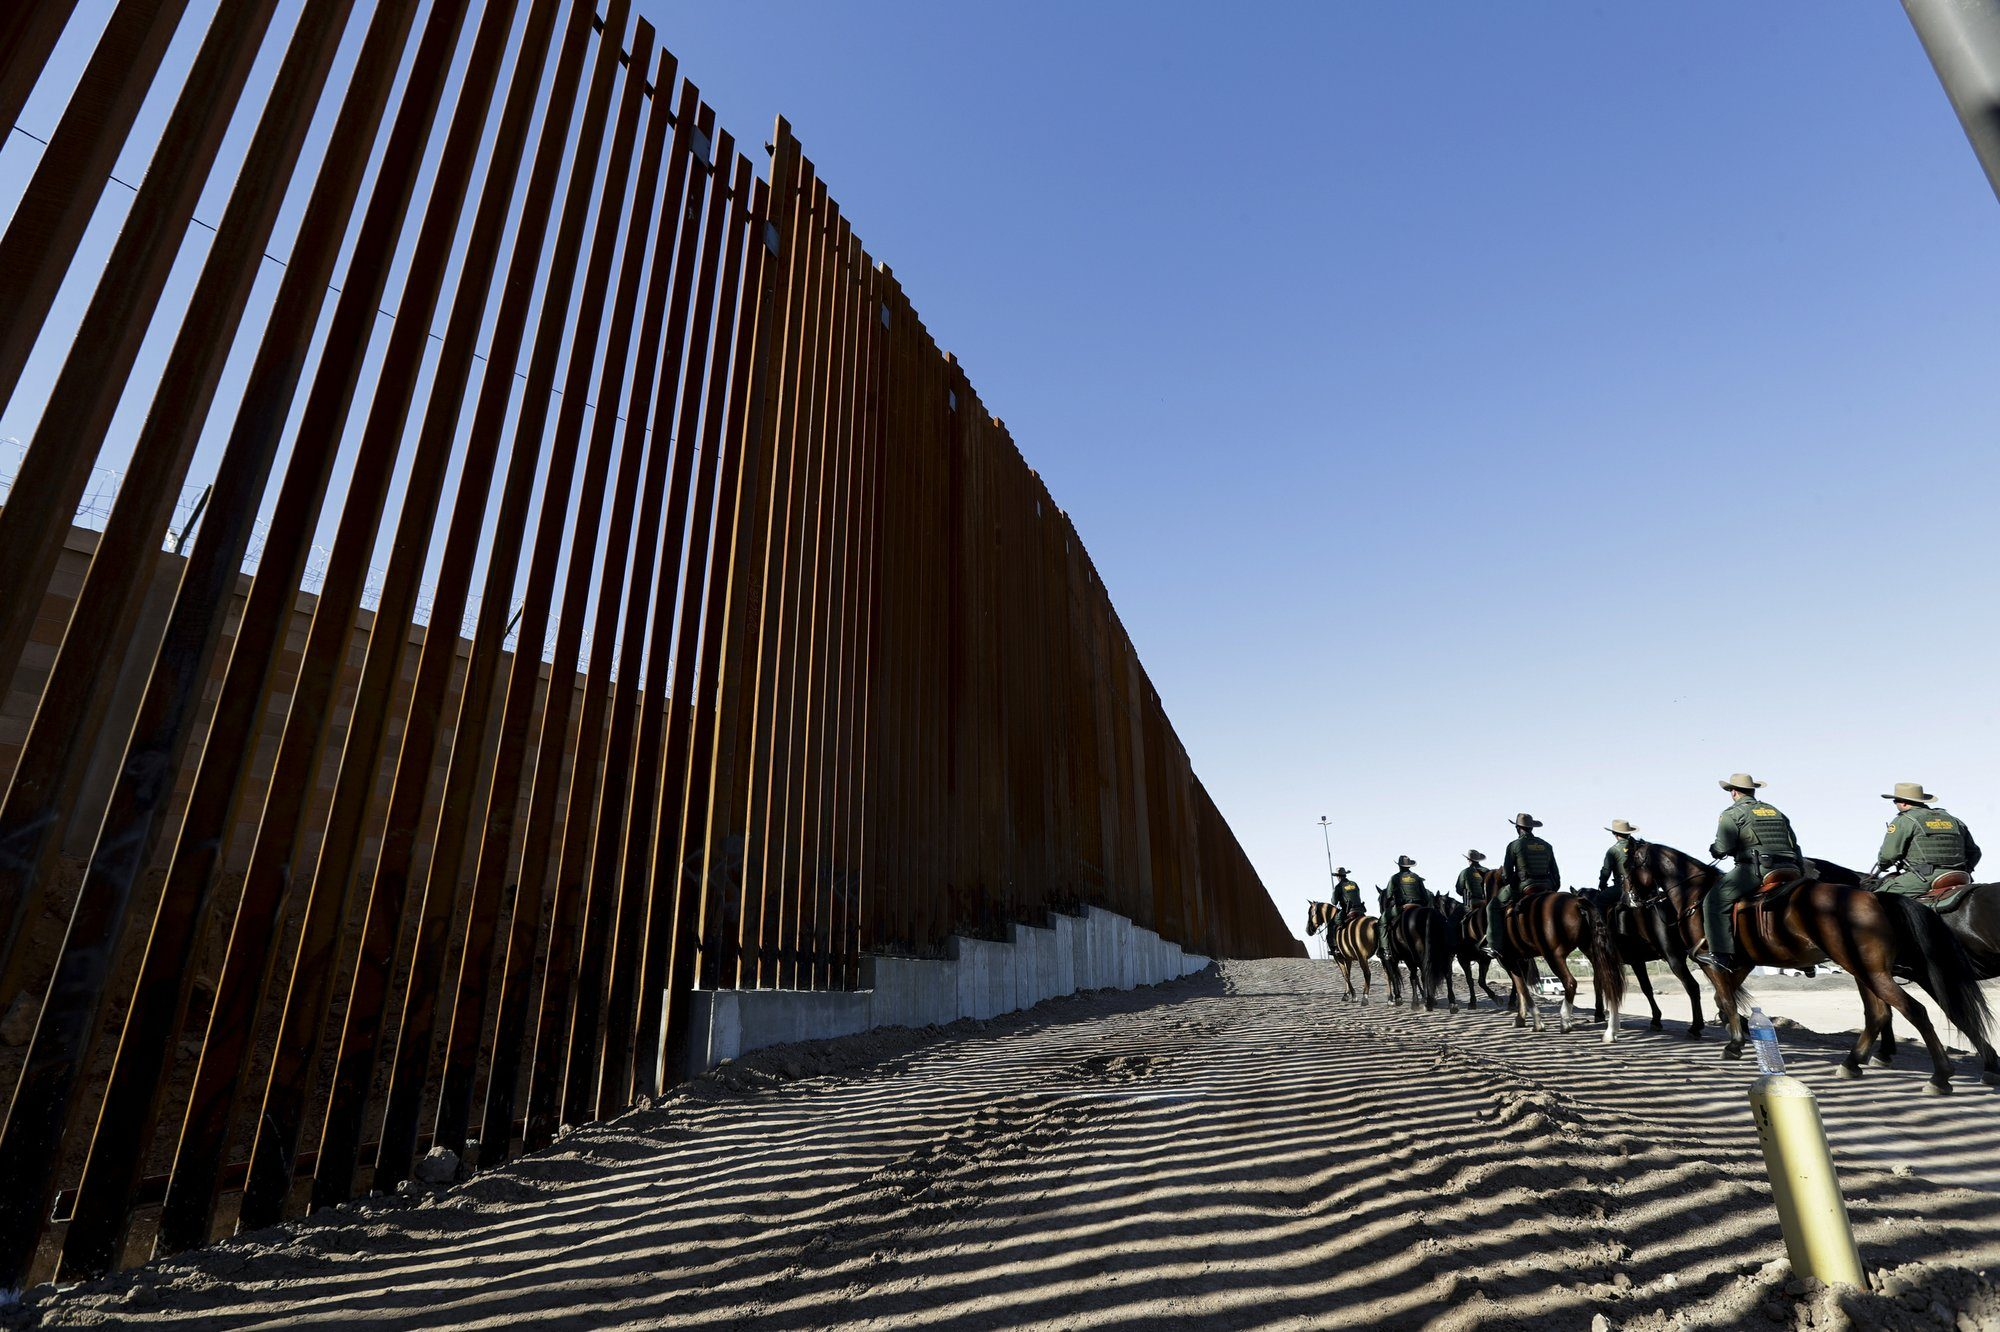 In this Oct. 26, 2018, file photo, mounted Border Patrol agents ride along a newly fortified border wall structure in Calexico, Calif. (AP Photo/Gregory Bull, File)